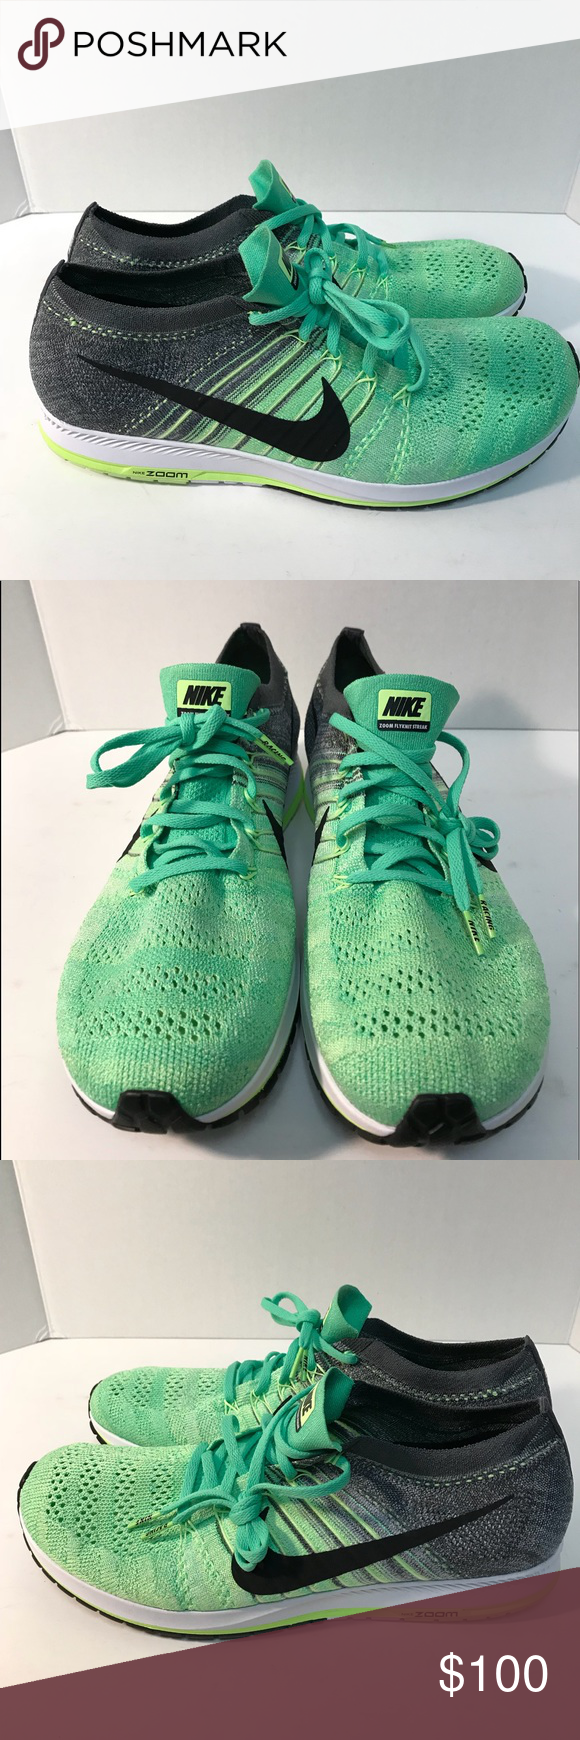 new product 0d2e0 12db7 Nike Zoom Flyknit Streak 6 Electro Green Size 13 Nike Zoom Flyknit Streak 6  Electro Green White Running Shoes Men s size 13 Nike ID  835994-303 Nike  Shoes ...